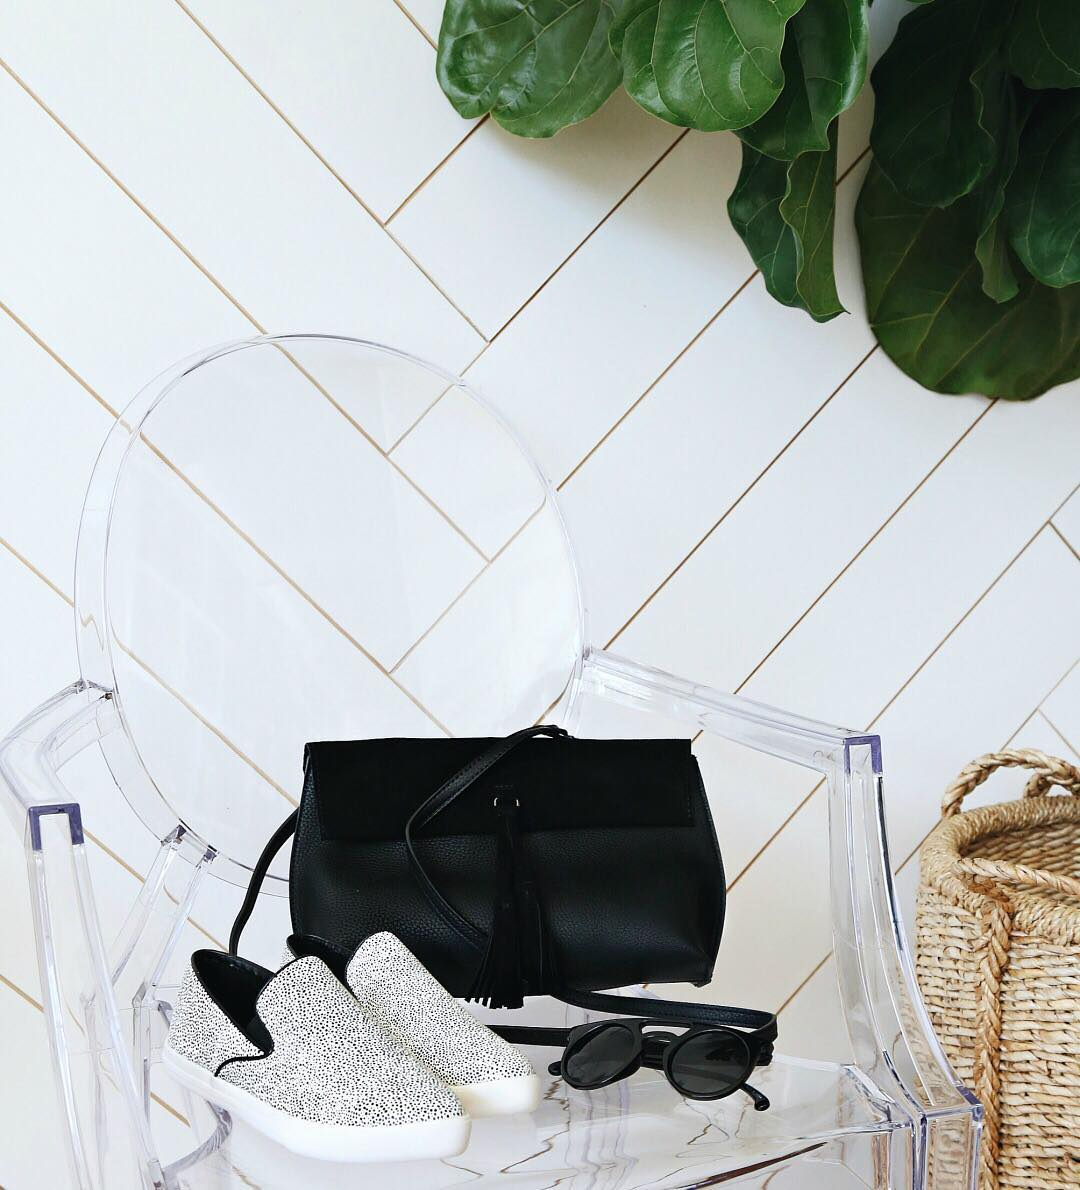 Lulus Black Handbag